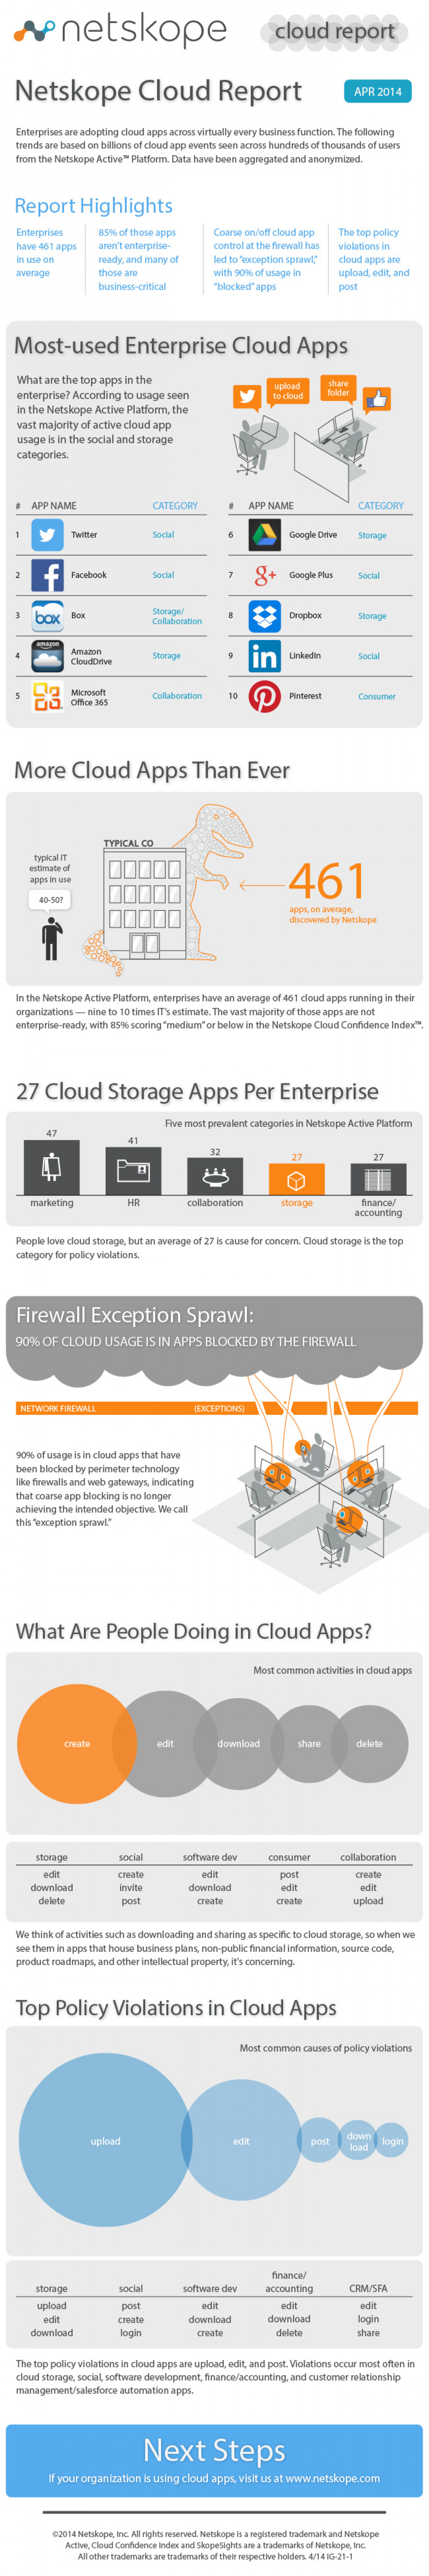 Netskope Cloud Report Infographic